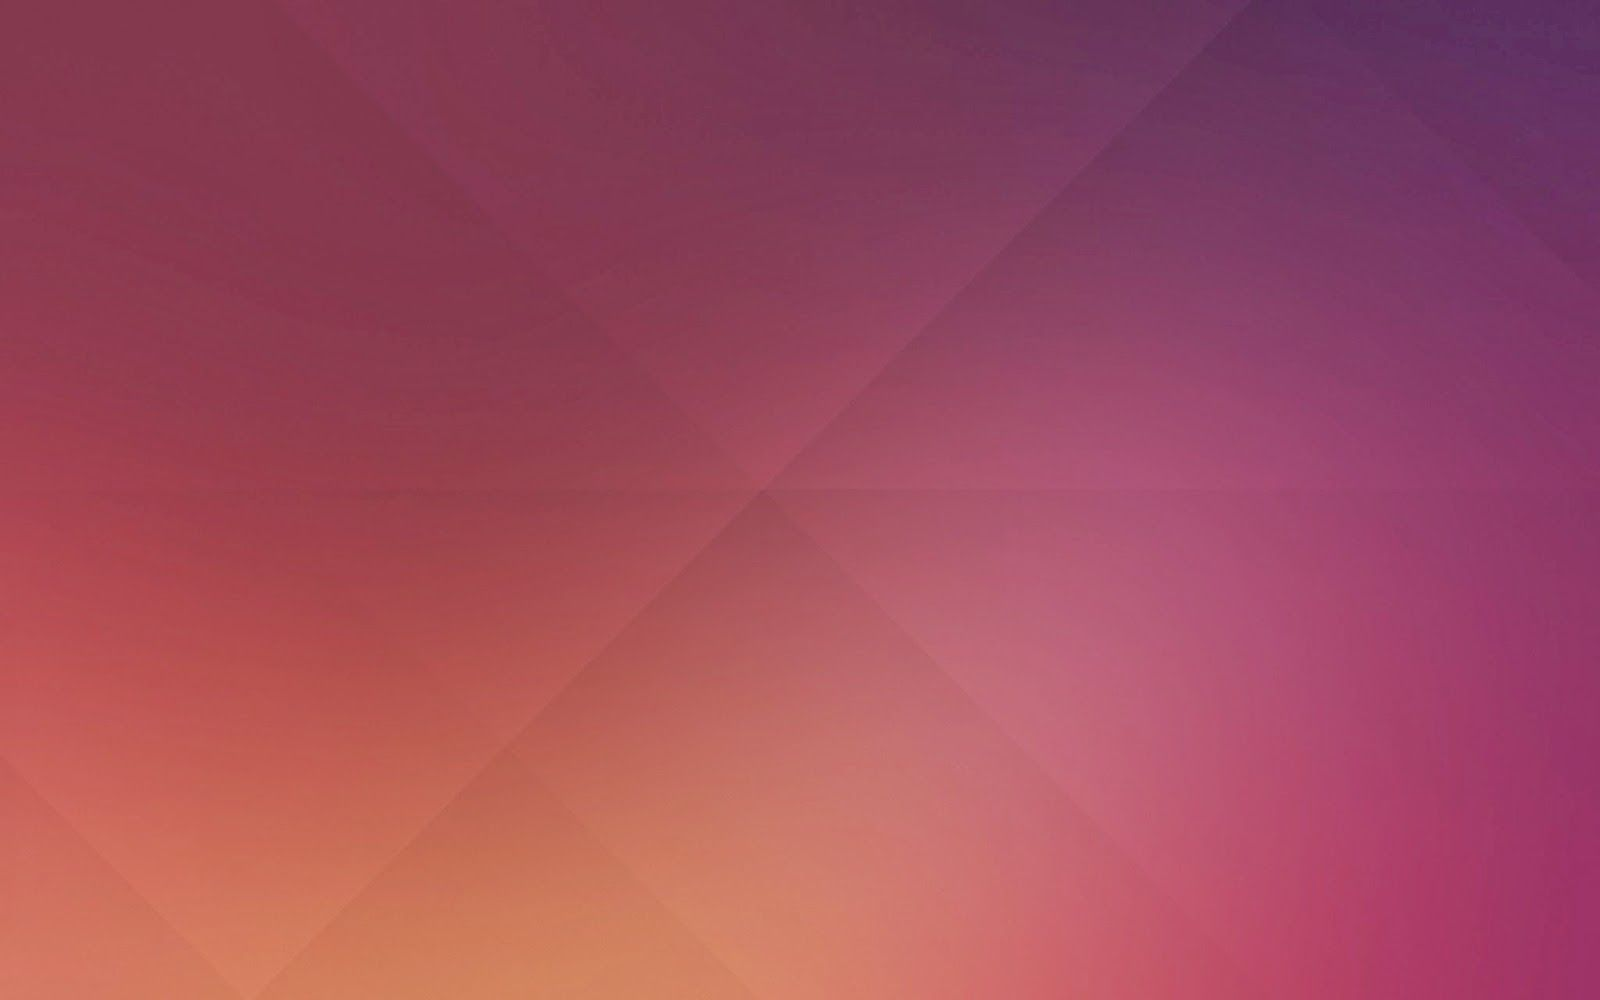 The Default Background Of Ubuntu 1404